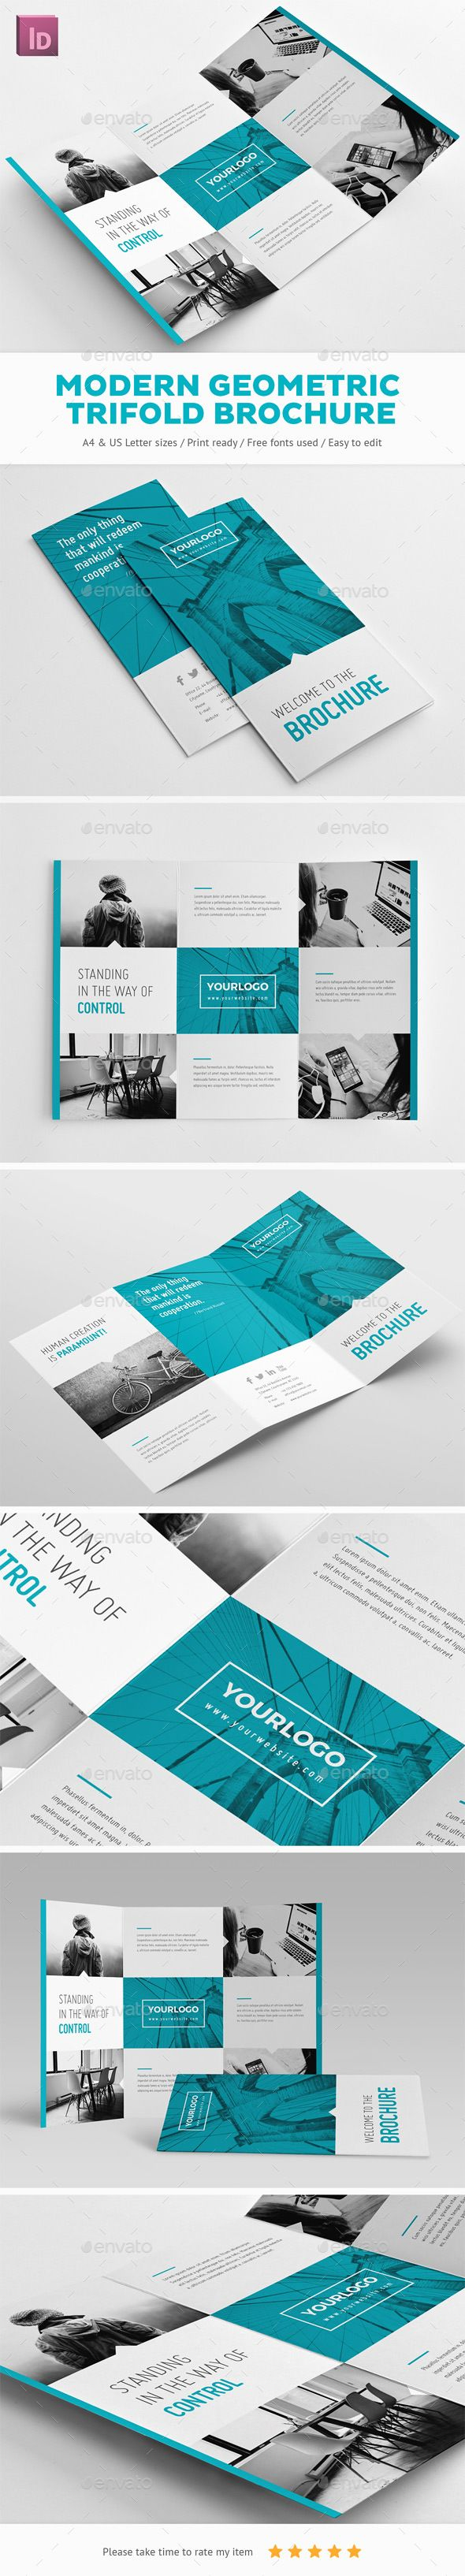 Modern Geometric Trifold Brochure - Brochures Print Templates                                                                                                                                                                                 More